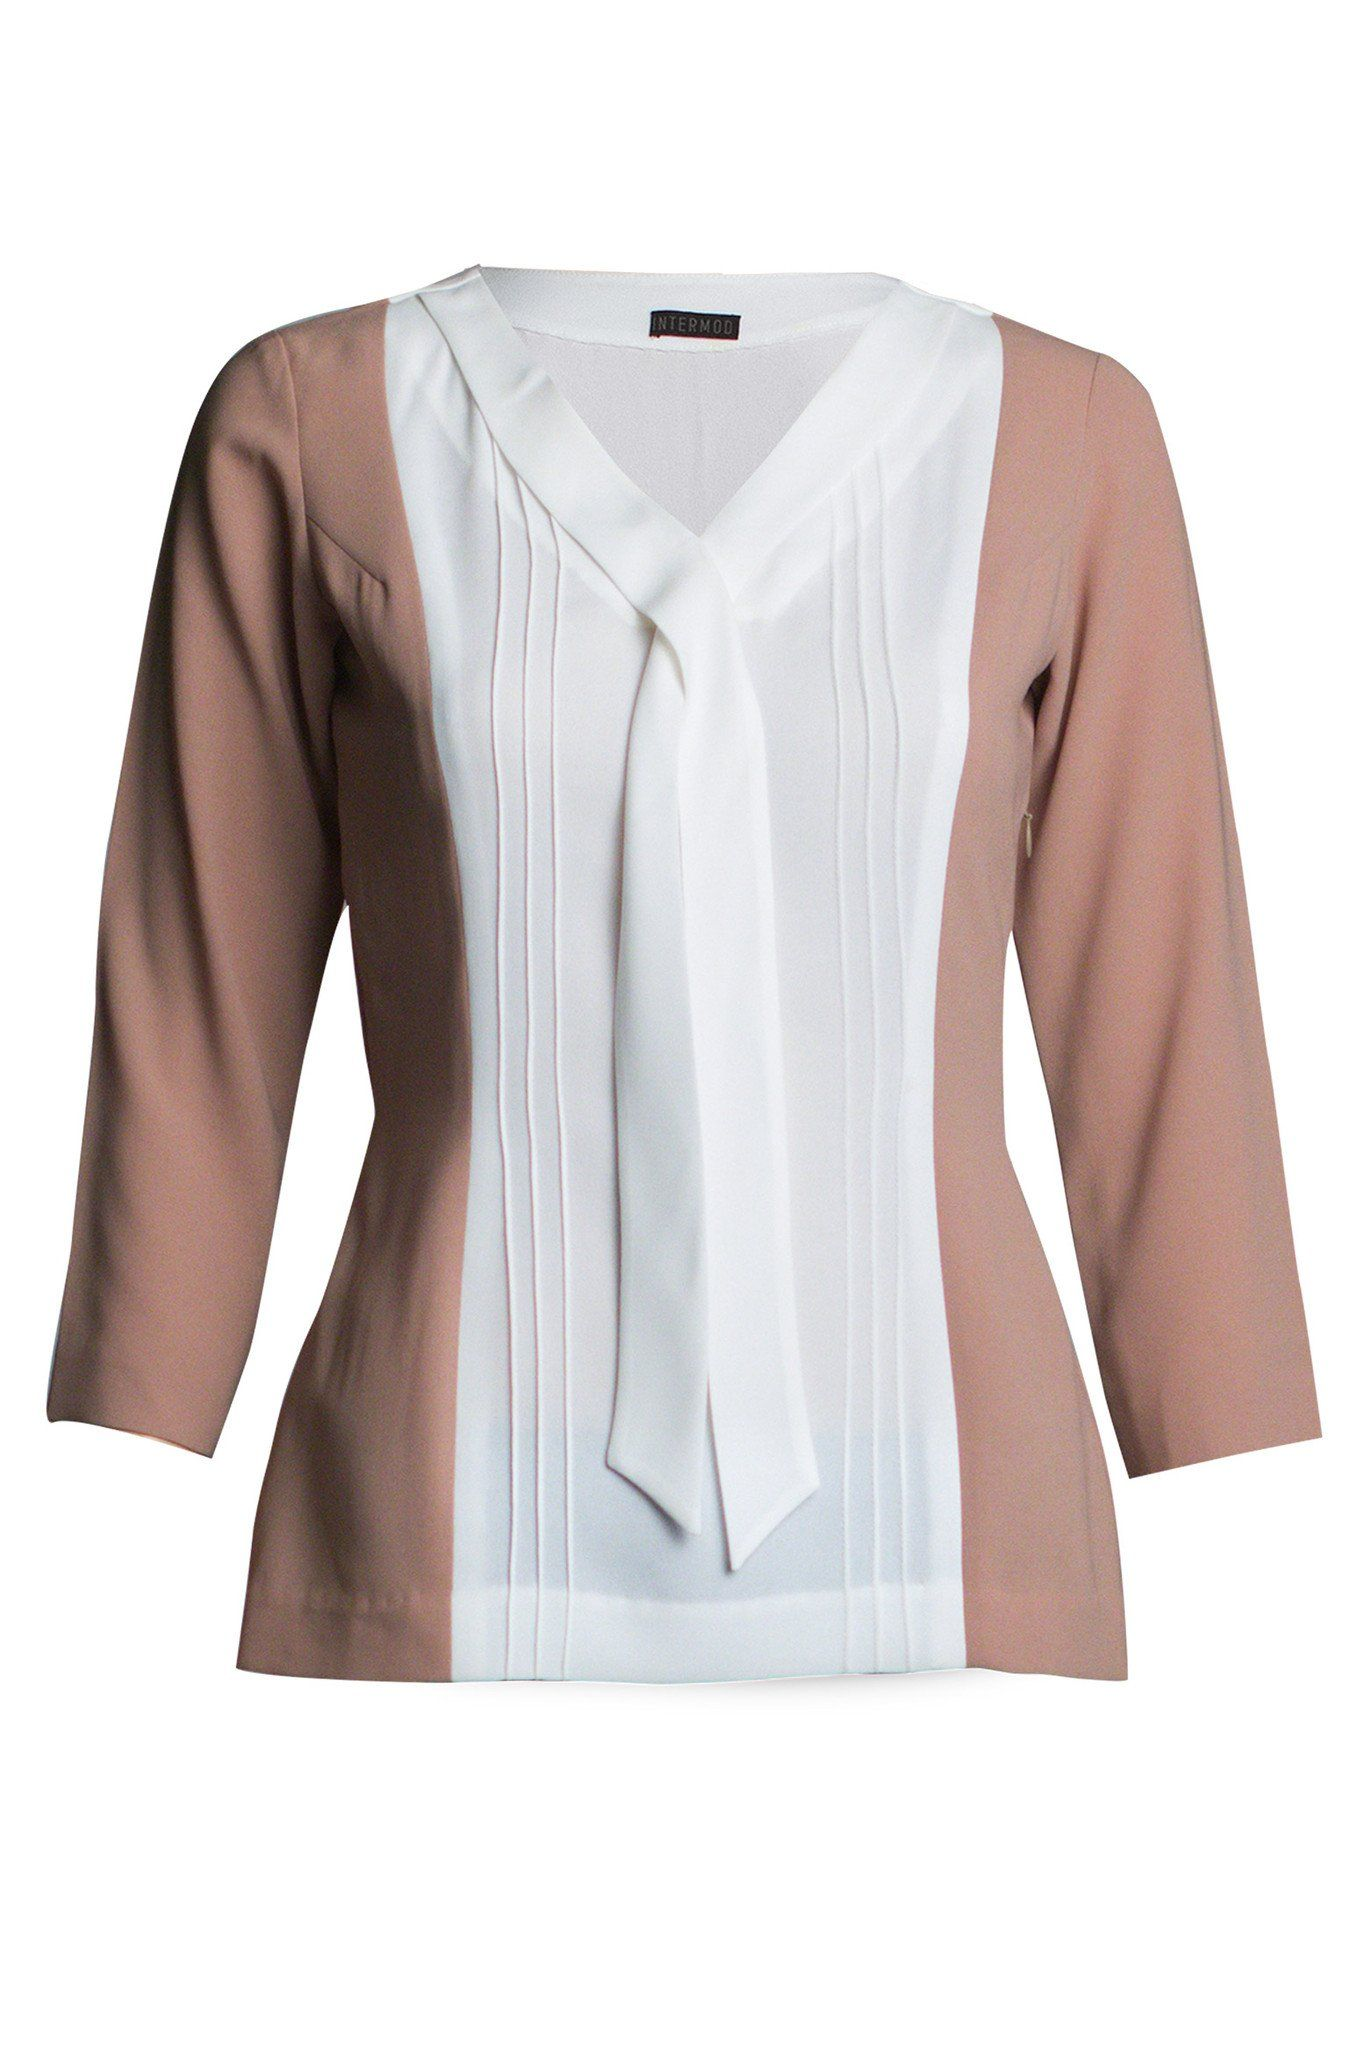 Color block done masterfully in this white and sand coloured blouse. The  vertical paneling creates a slimmer silhouette and the pintucks and tie  details add ... cf4206113a